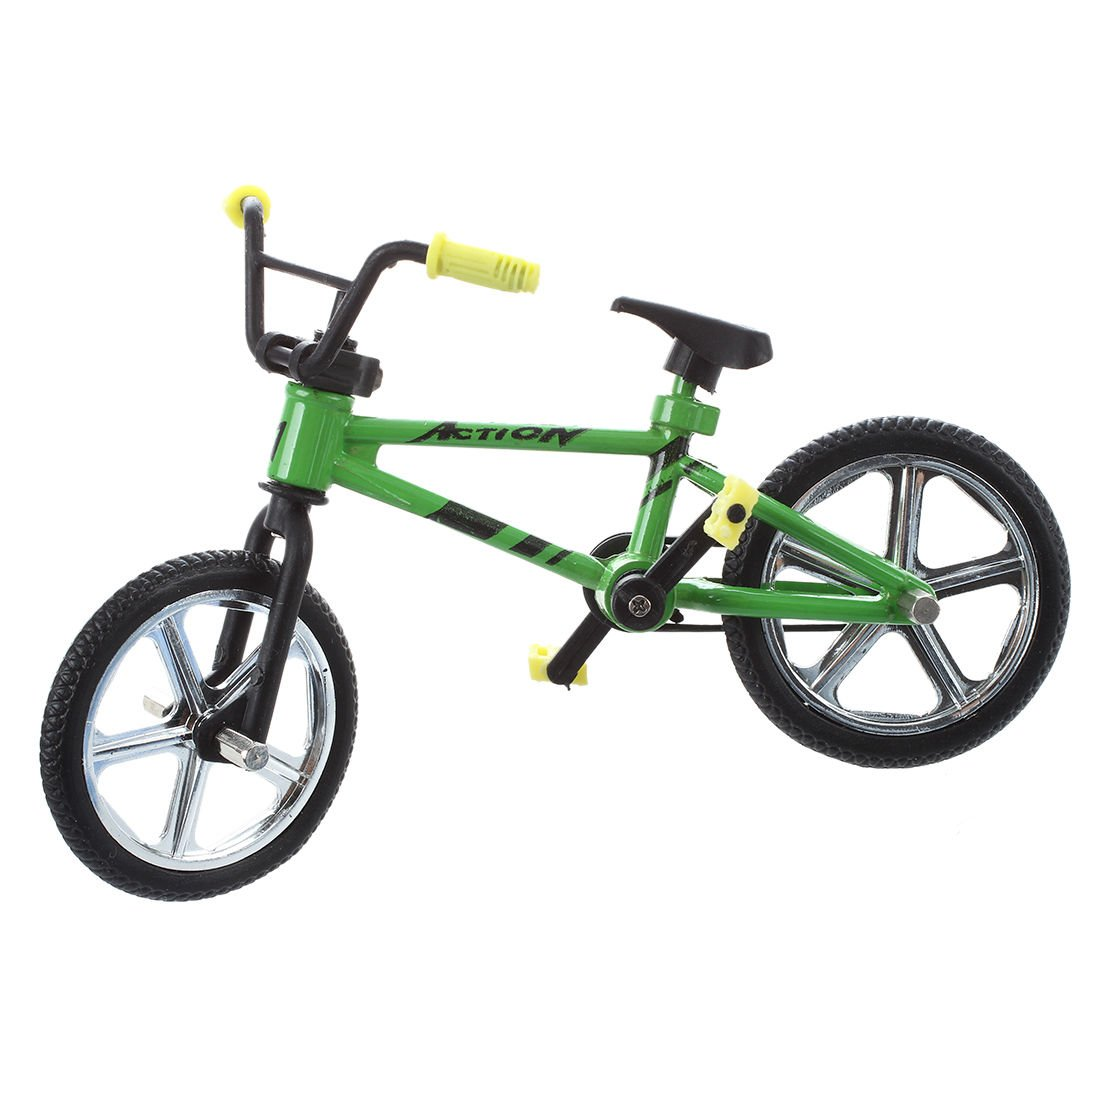 Bicycle toys - SODIAL(R) Finger bicycle miniature toys for children boys Sports Gift 041169